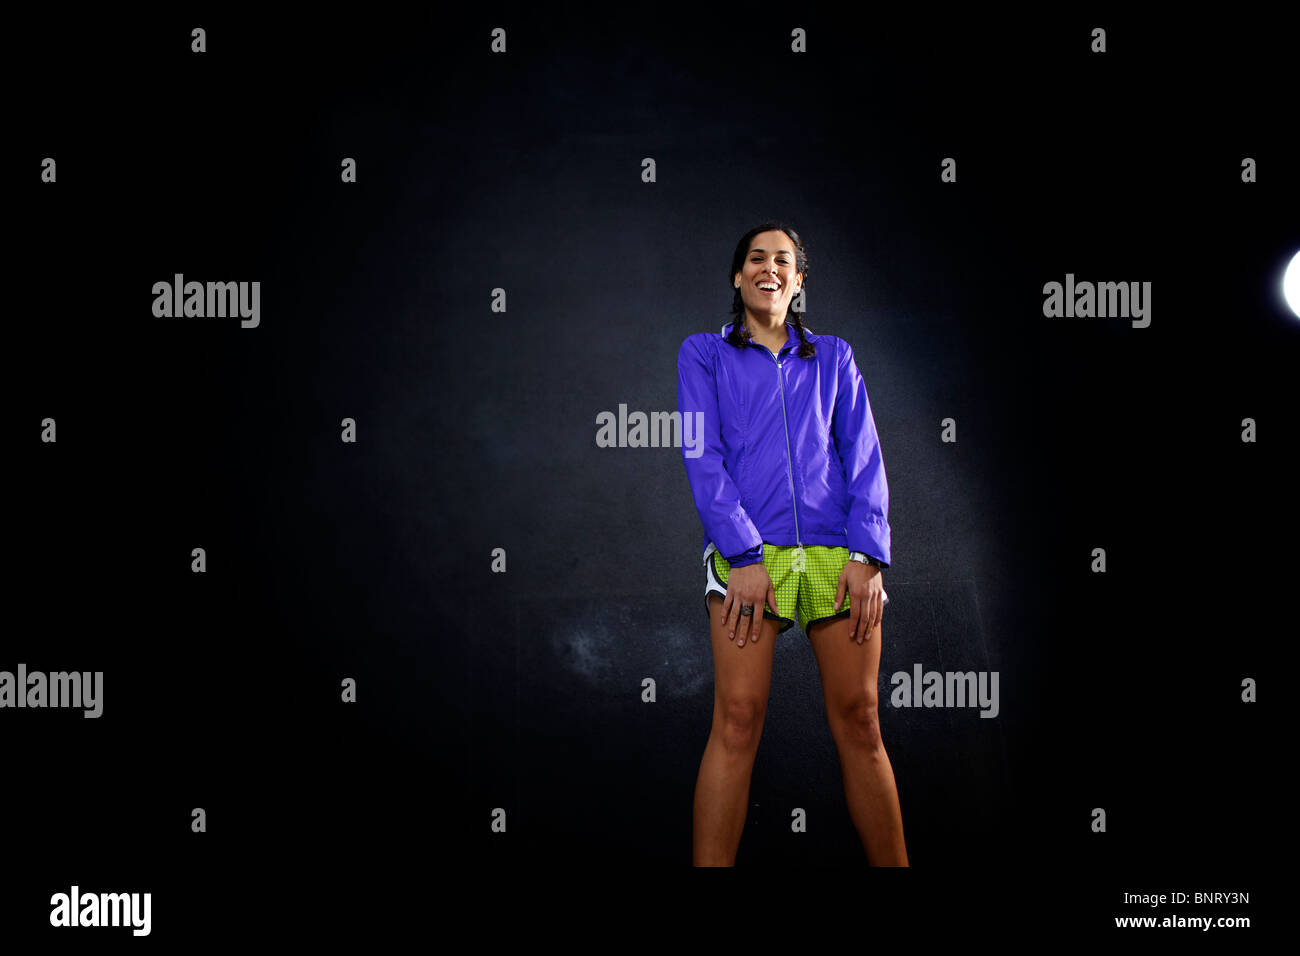 Female runner laughs in San Diego. - Stock Image